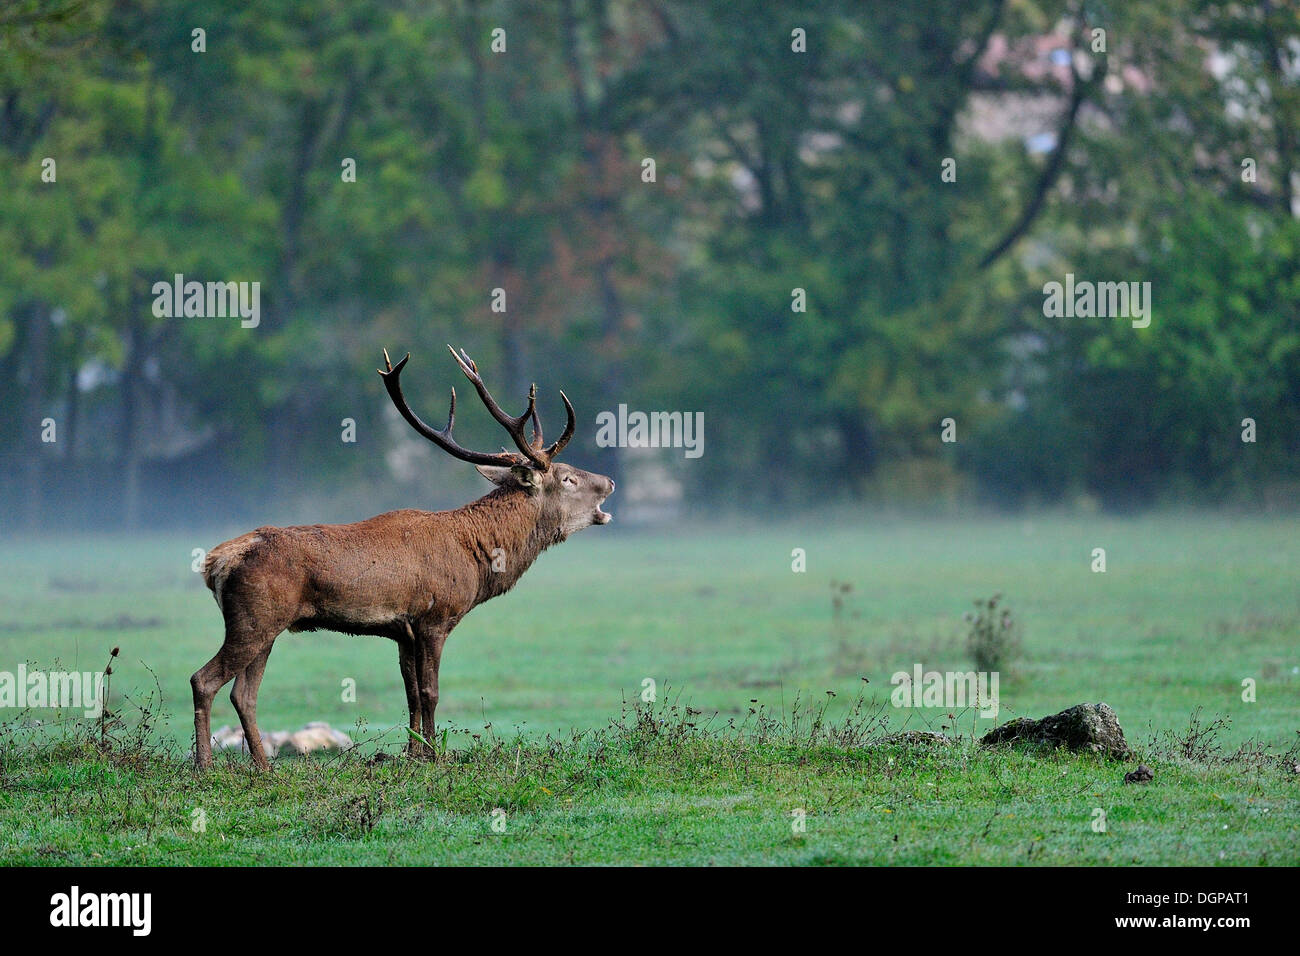 Male of red deer (Cervus elaphus), Cervidae, Civitella Alfedena, Abruzzo National Park, Italy - Stock Image